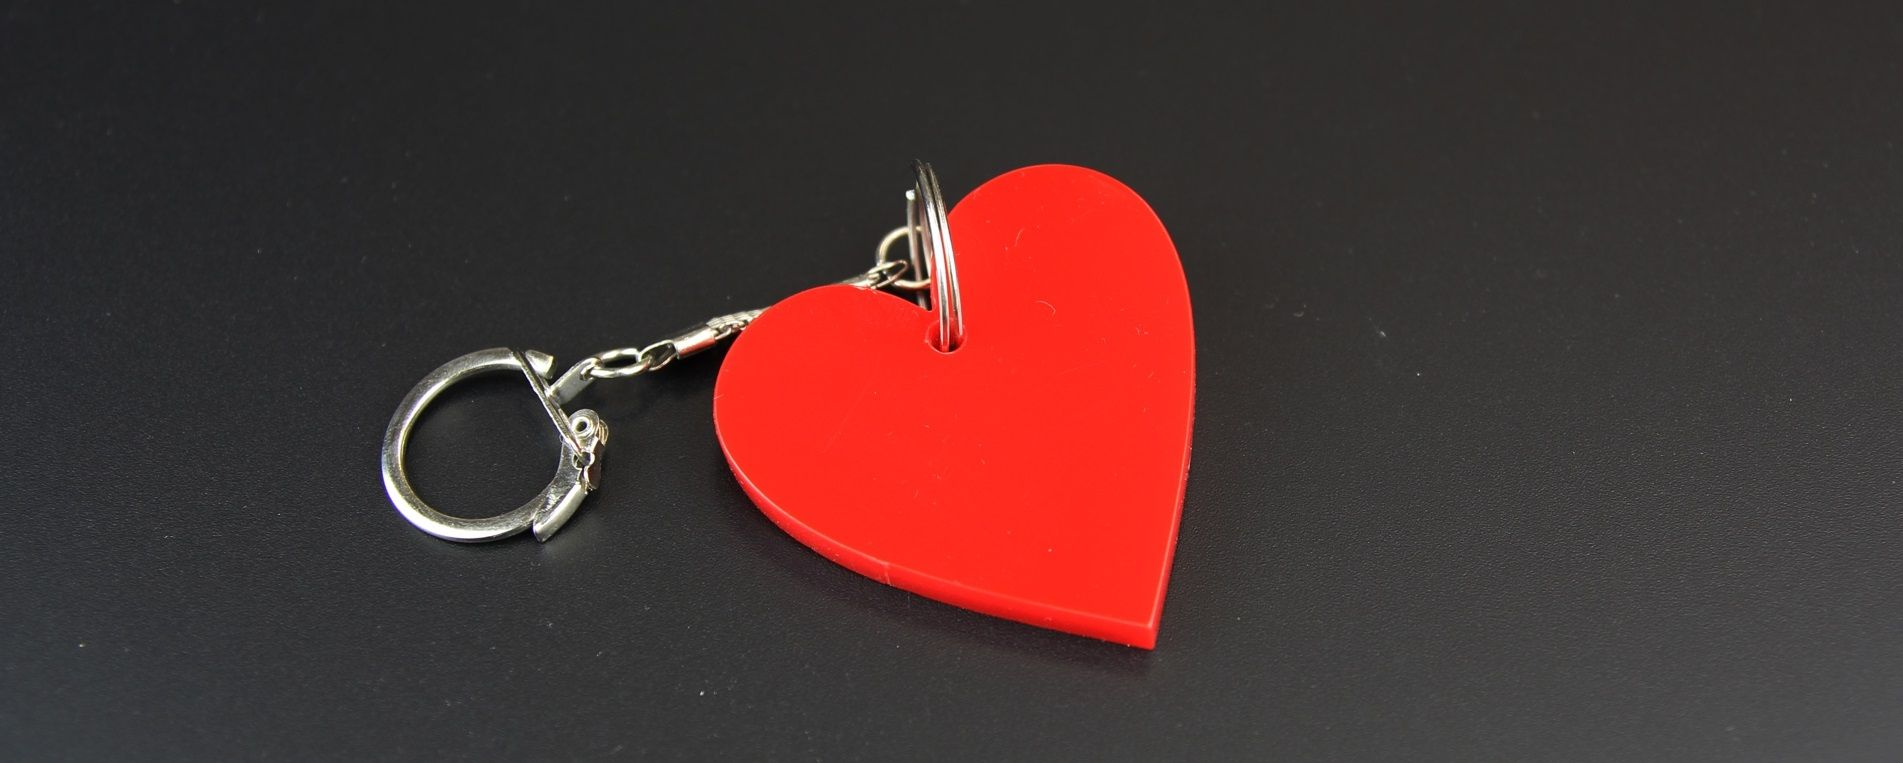 Laser cutting of an Heart-shaped keychain made of red acryilic